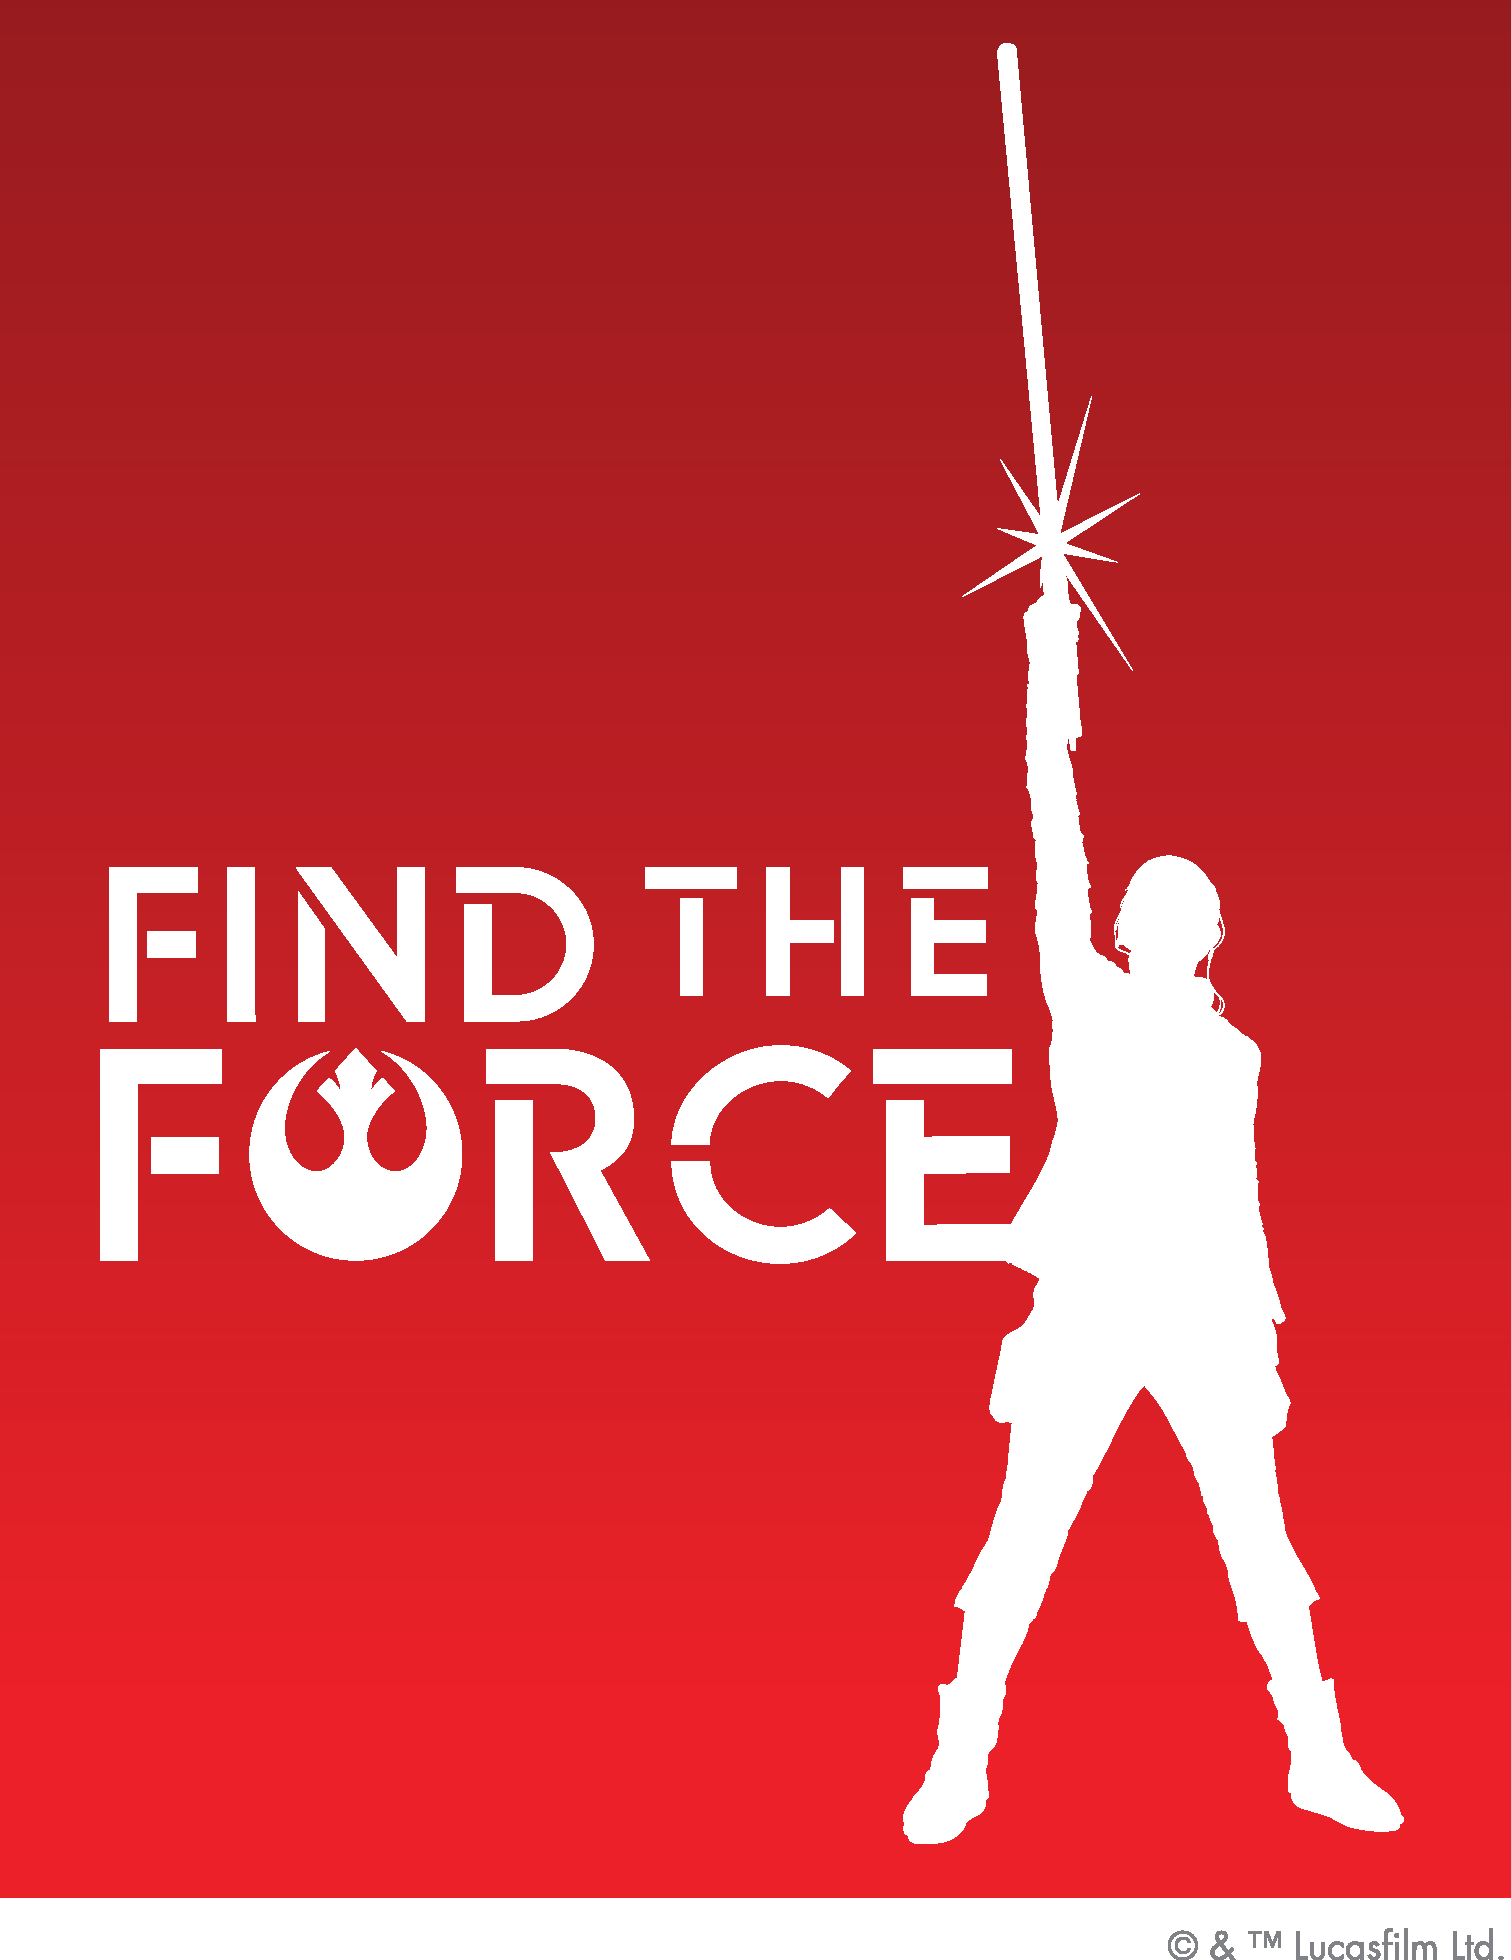 Disney and Lucasfilm today announced `Find the Force,` a global augmented reality event rolling out for `Force Friday II` (Sept. 1-3) to commemorate the worldwide launch of new products inspired by `Star Wars: The Last Jedi.` Fans can download the `Star Wars` app before heading to more than 20,000 retail locations worldwide to participate. For more information, visit http://www.starwars.com/findtheforce.